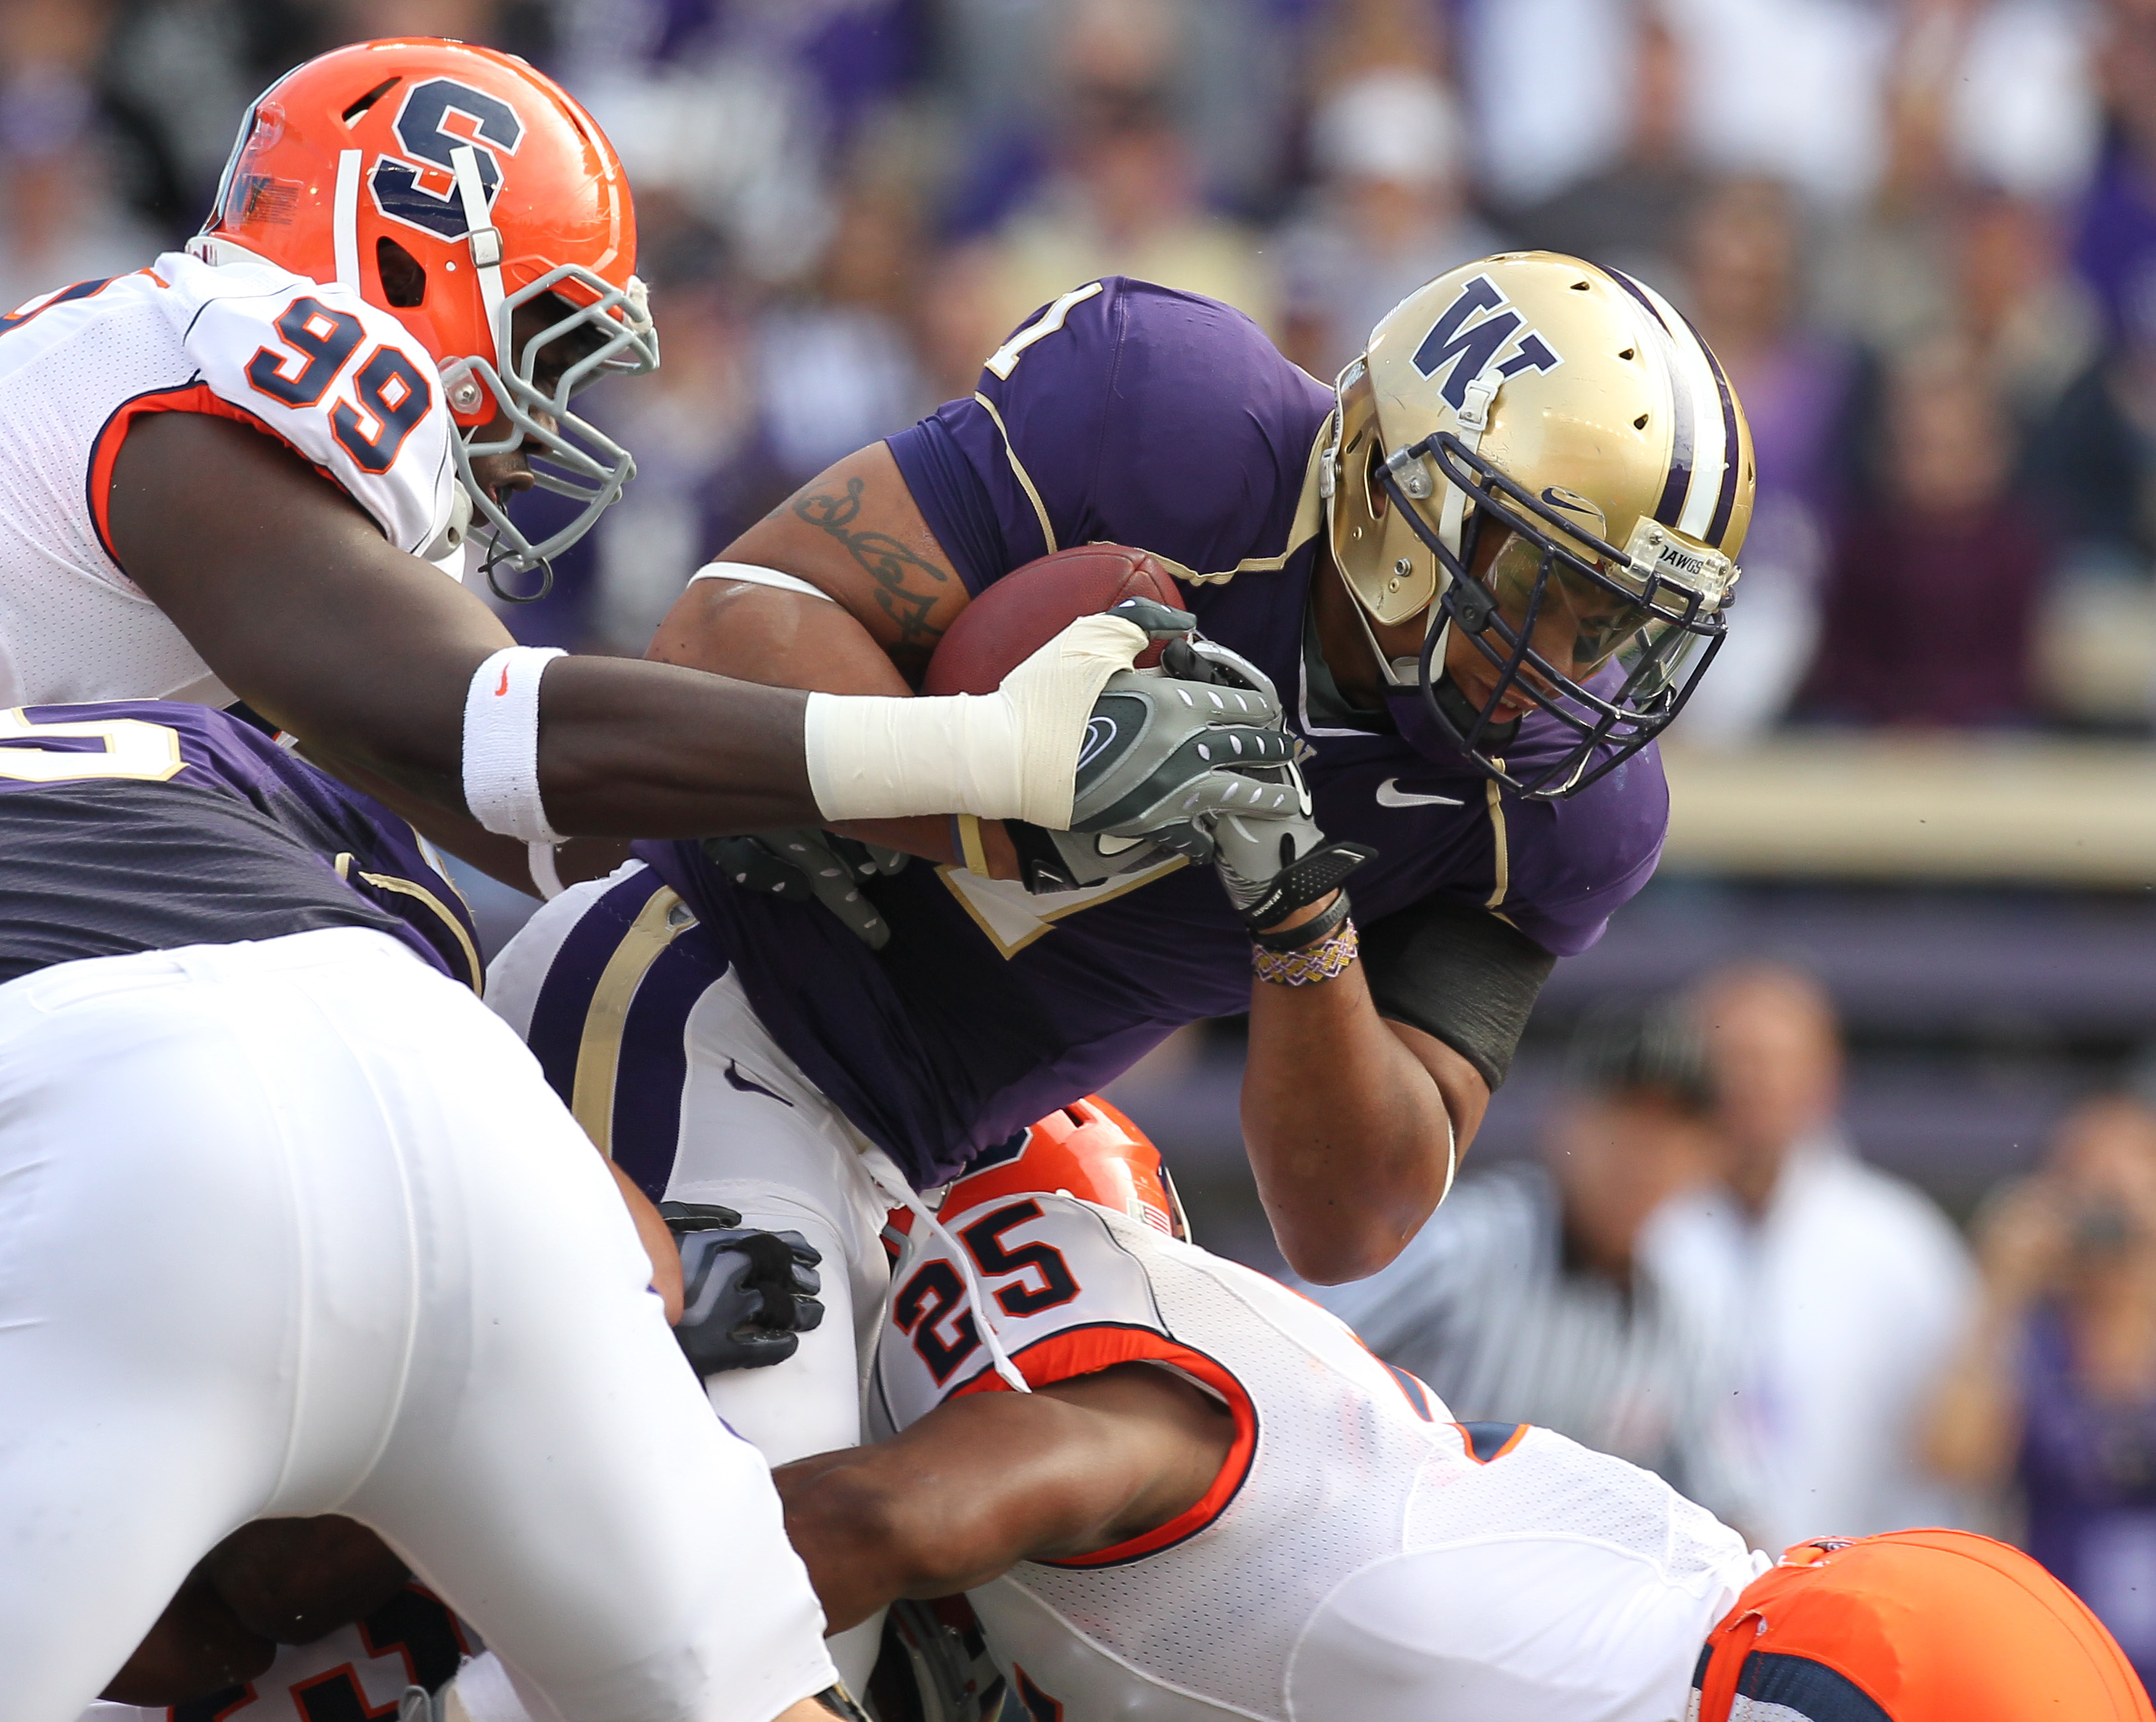 SEATTLE - SEPTEMBER 11:  Running back Chris Polk #1 of the Washington Huskies rushes against Derrell Smith #25 of the Syracuse Orange on September 11, 2010 at Husky Stadium in Seattle, Washington. (Photo by Otto Greule Jr/Getty Images)